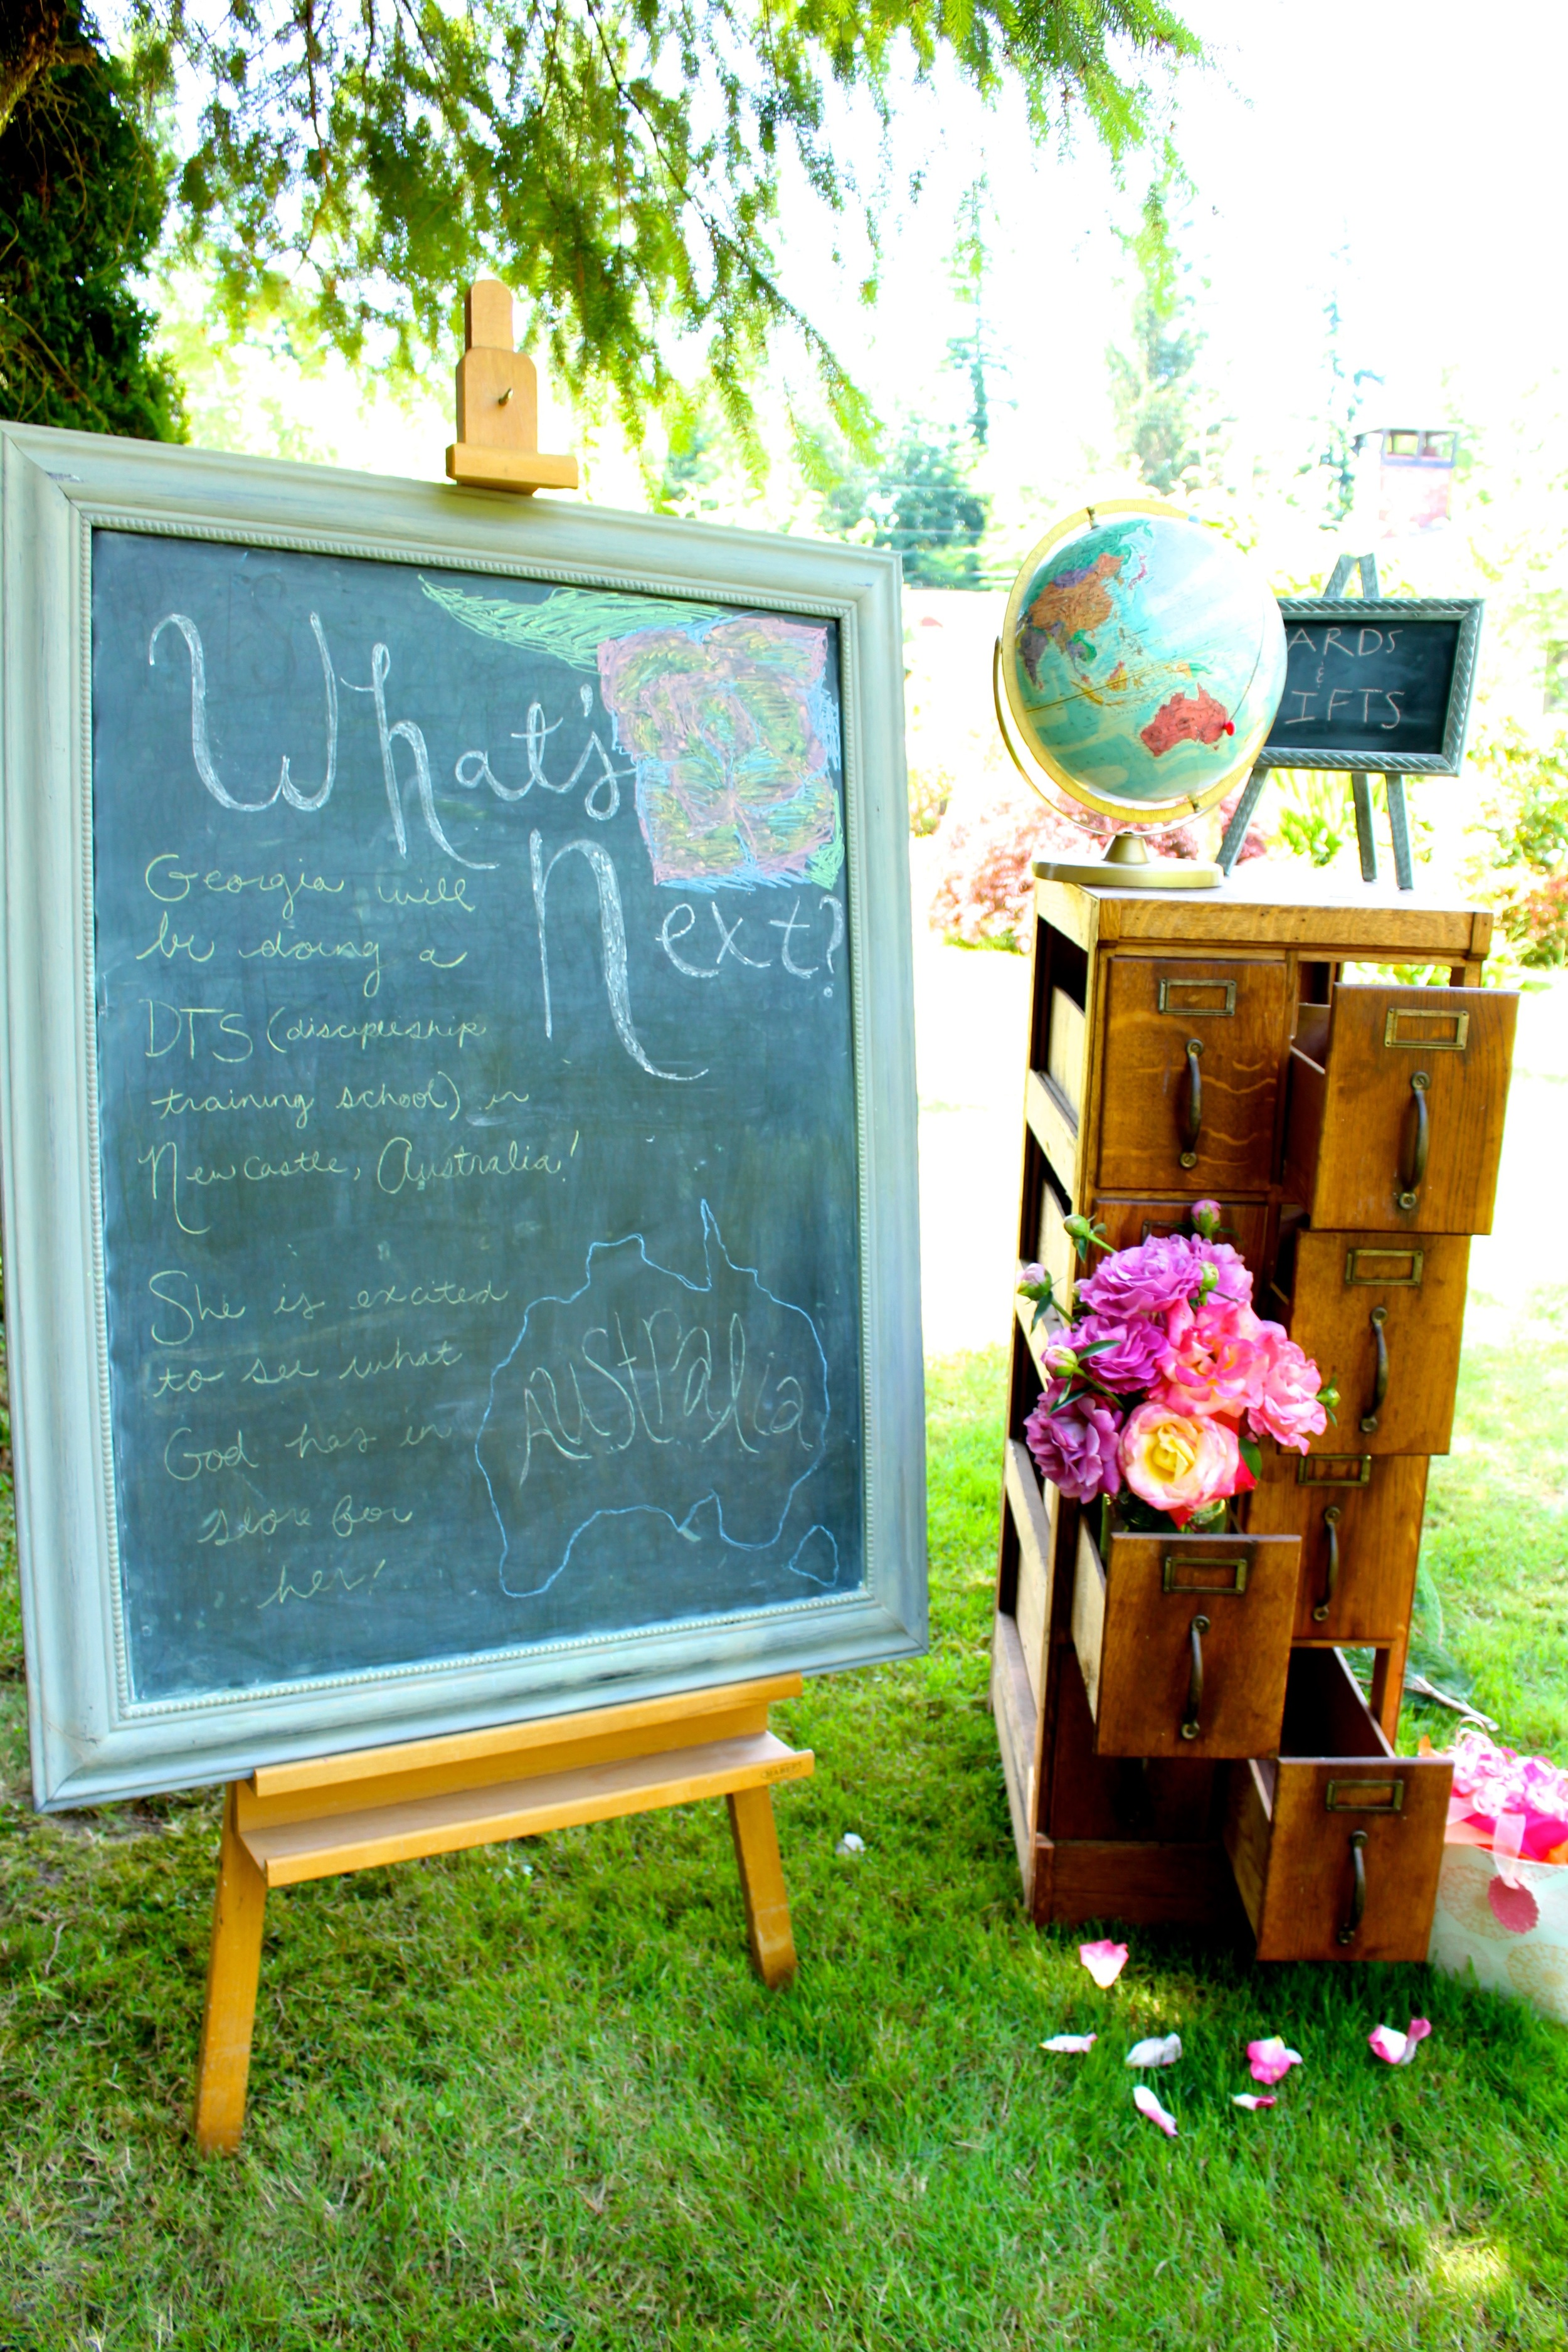 What's Next Chalkboard Travel Theme Graduation Party Decor II www.ciderpresslane.com